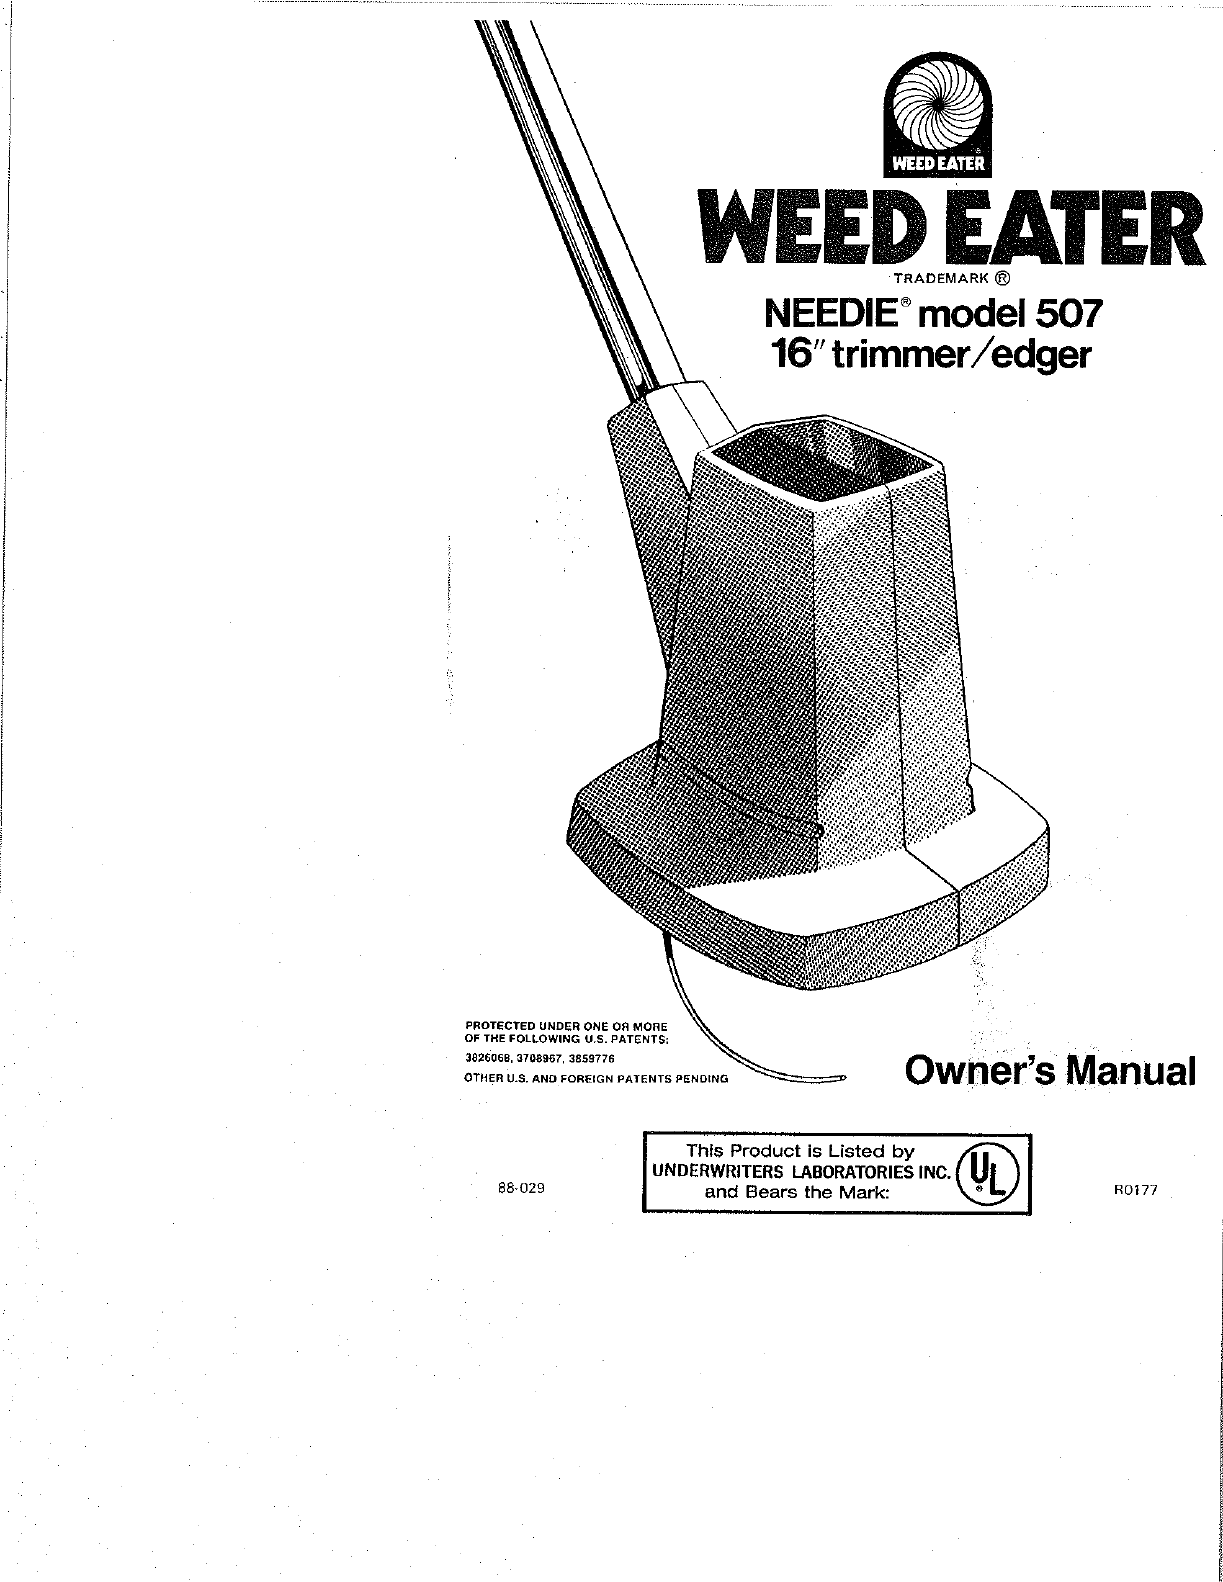 Weed Eater Trimmer 507 User Guide